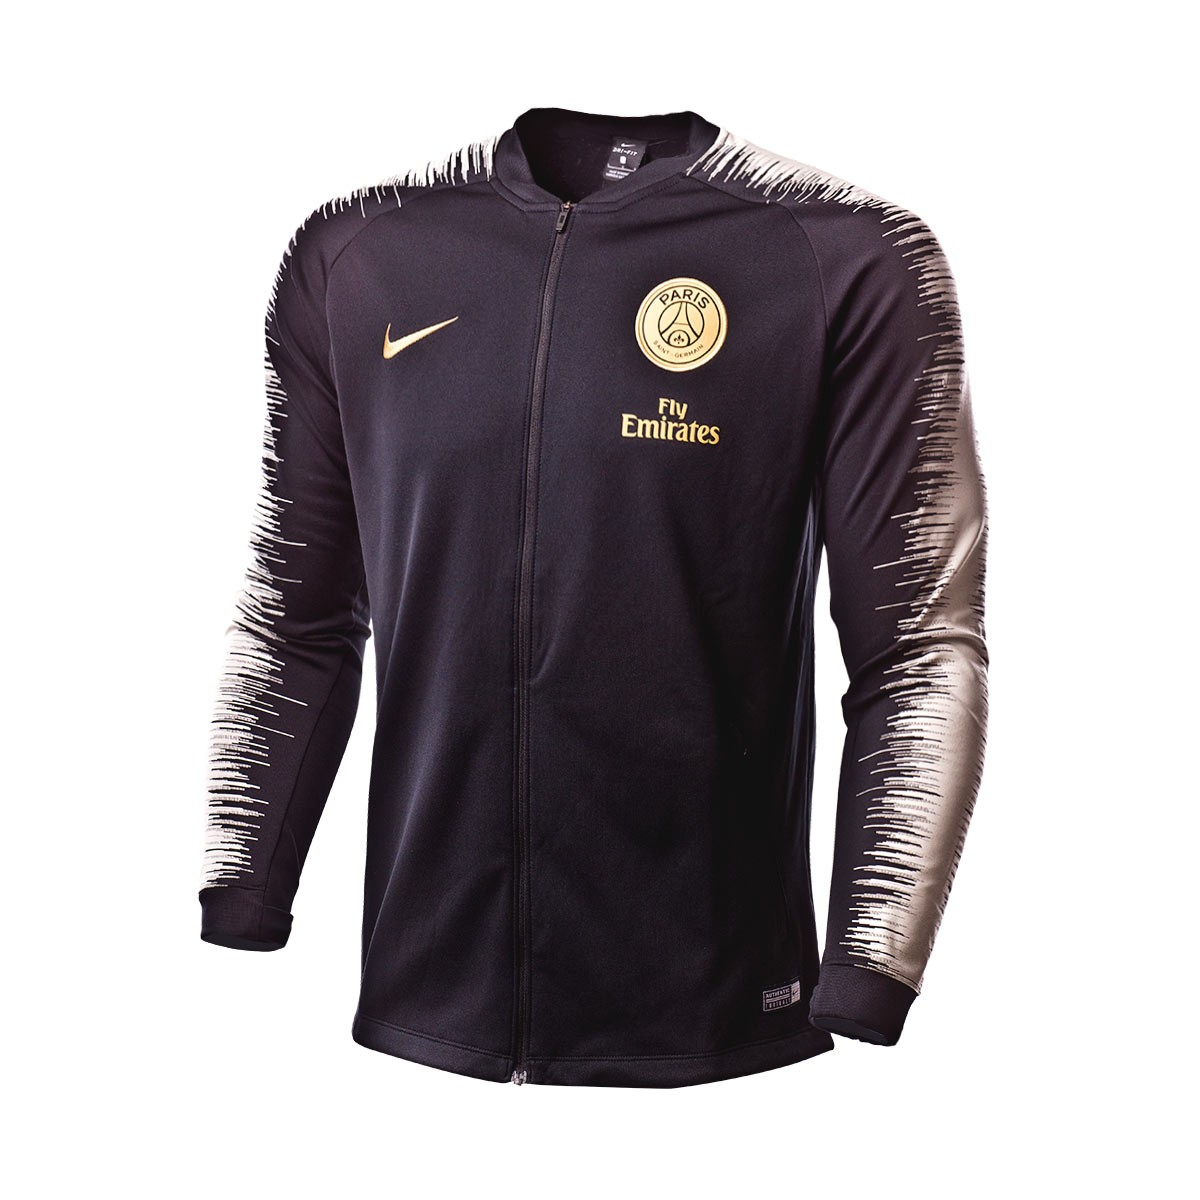 115cbb86bc3 Casaco Nike Paris Saint-Germain 2018-2019 Black-Light bone-Truly gold -  Loja de futebol Fútbol Emotion